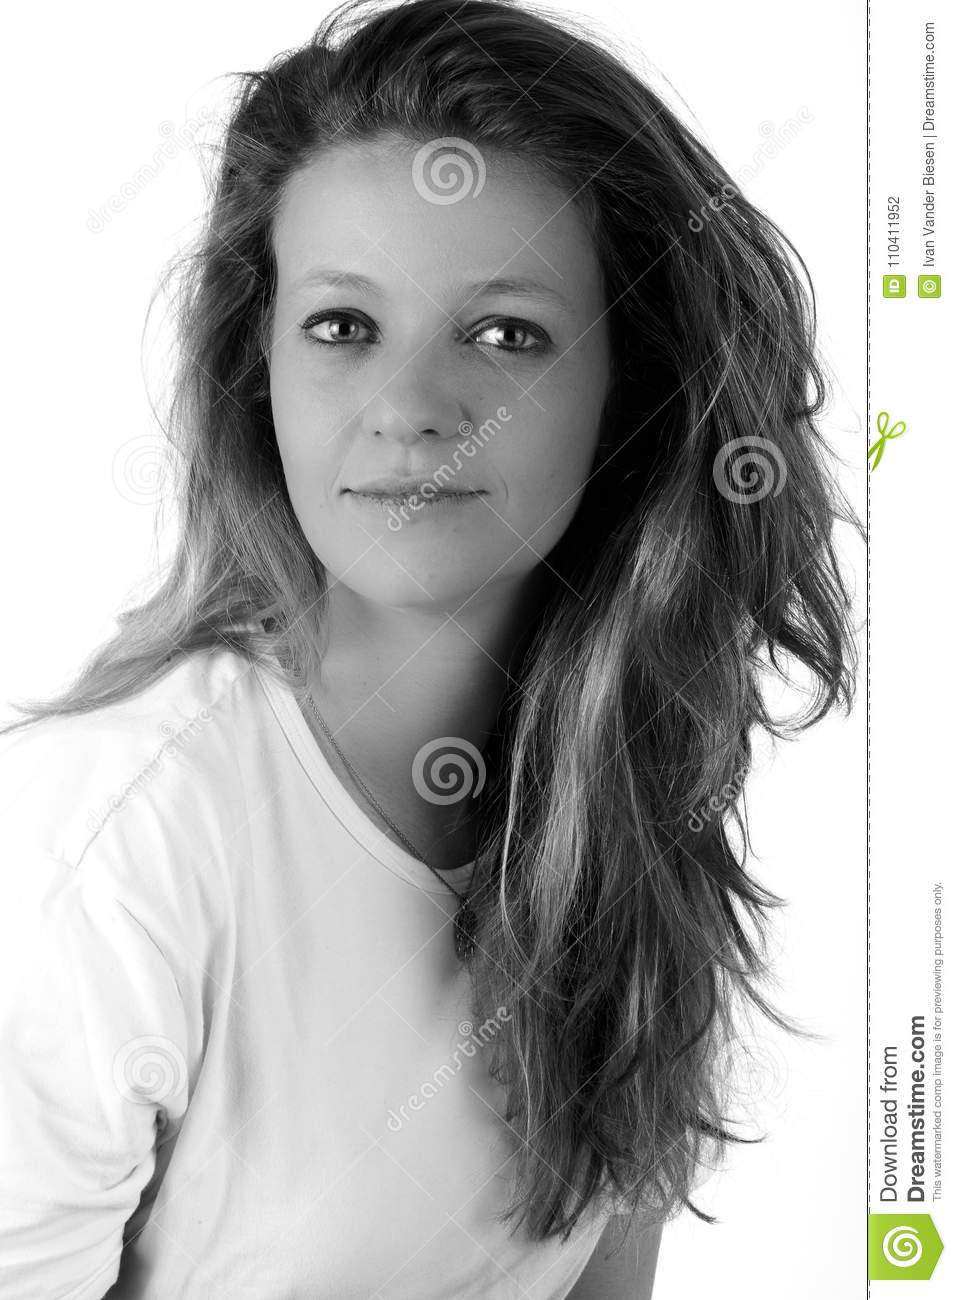 Blond woman portrait wearing a white shirt in high key in black and white on a white background